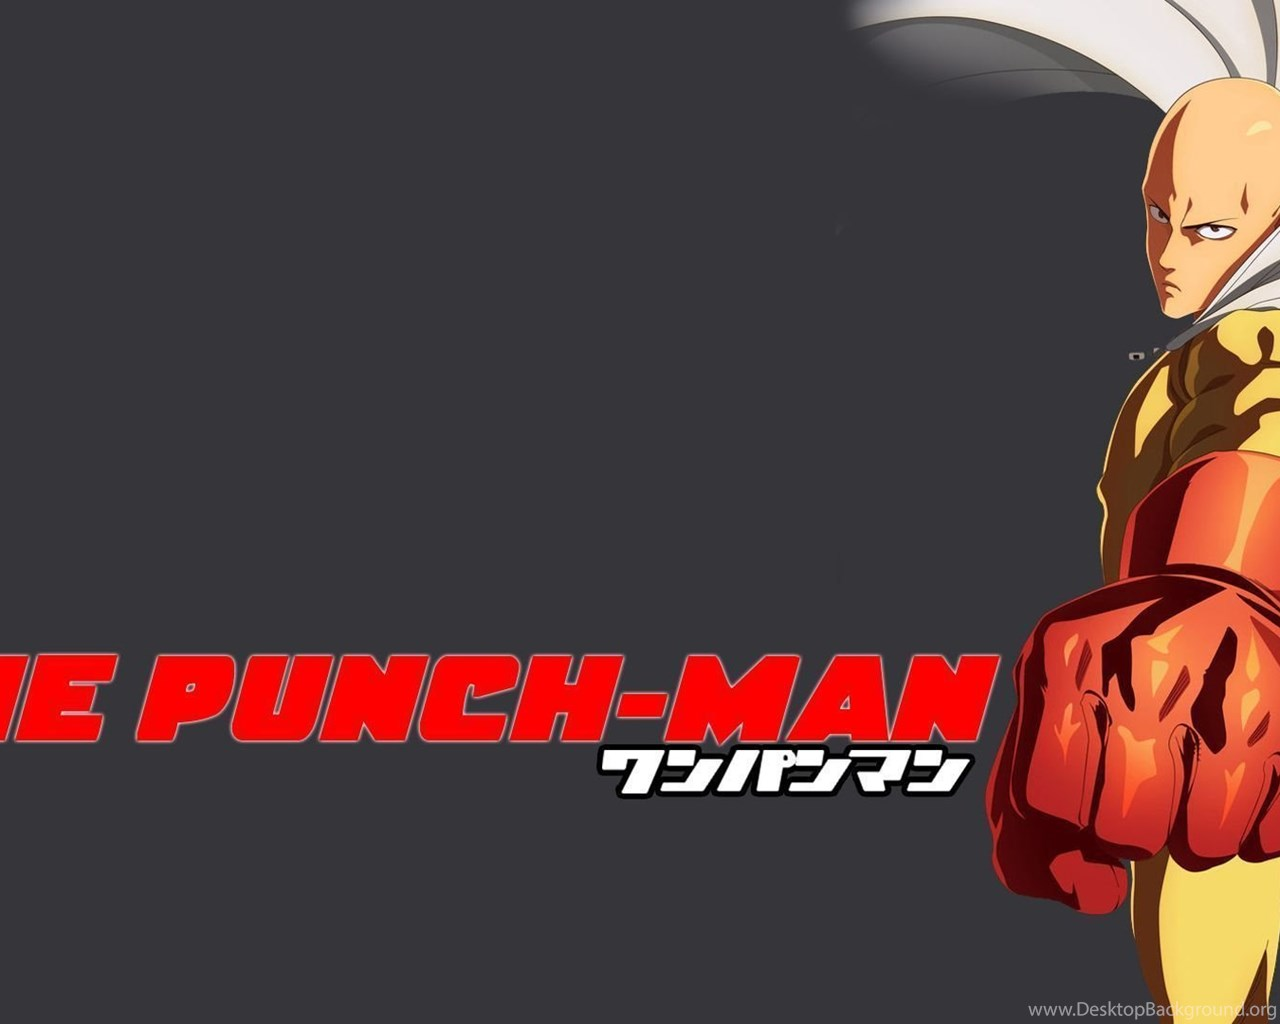 242 One Punch Man Hd Wallpapers Desktop Background